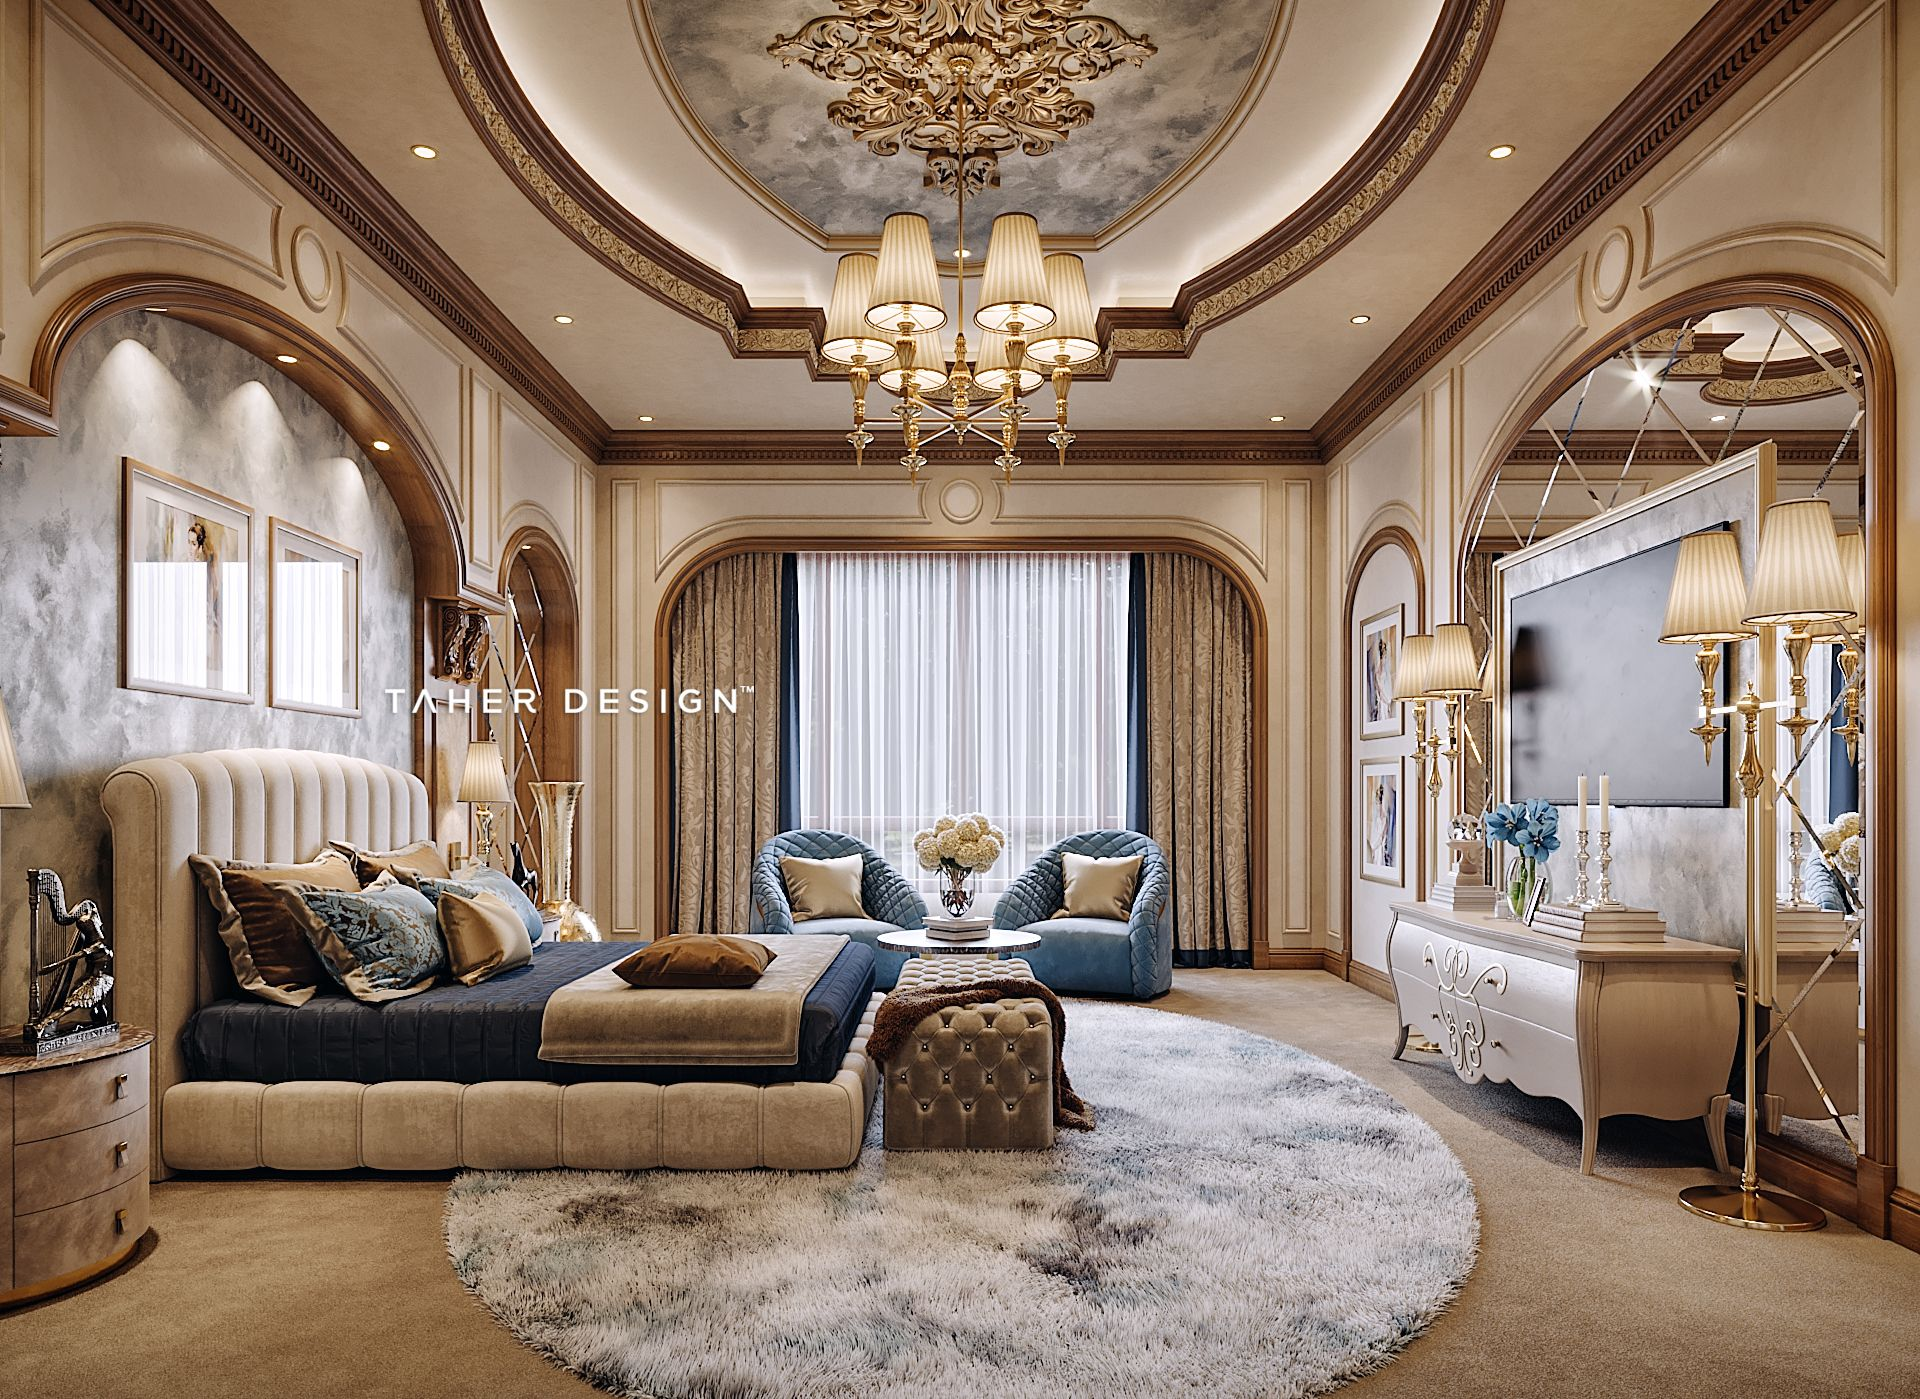 Guest Bedroom Design For Luxury Mansion Located In ( Dubai